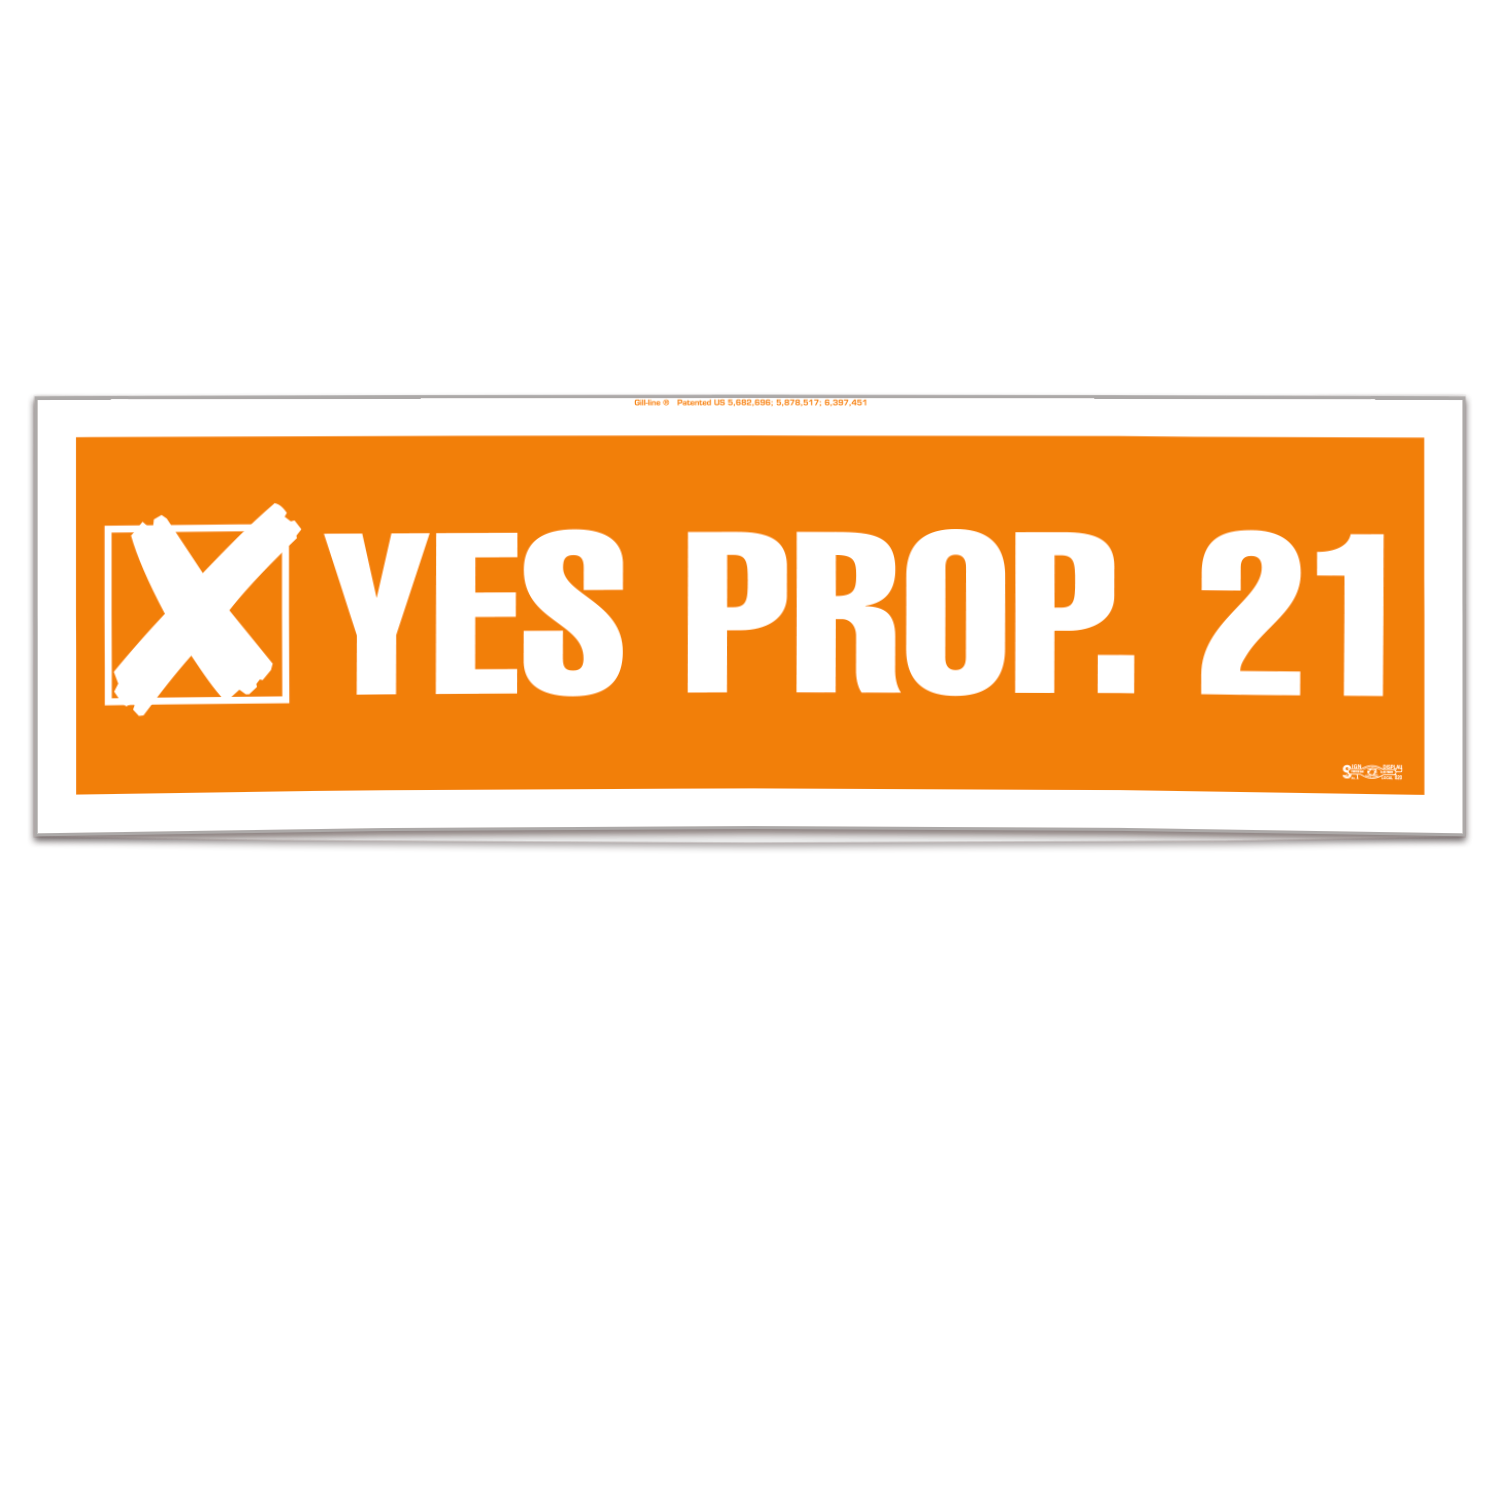 https://www.sswprinting.com/images/products_gallery_images/19311_Yes-on-Prop-21_hi-res.png